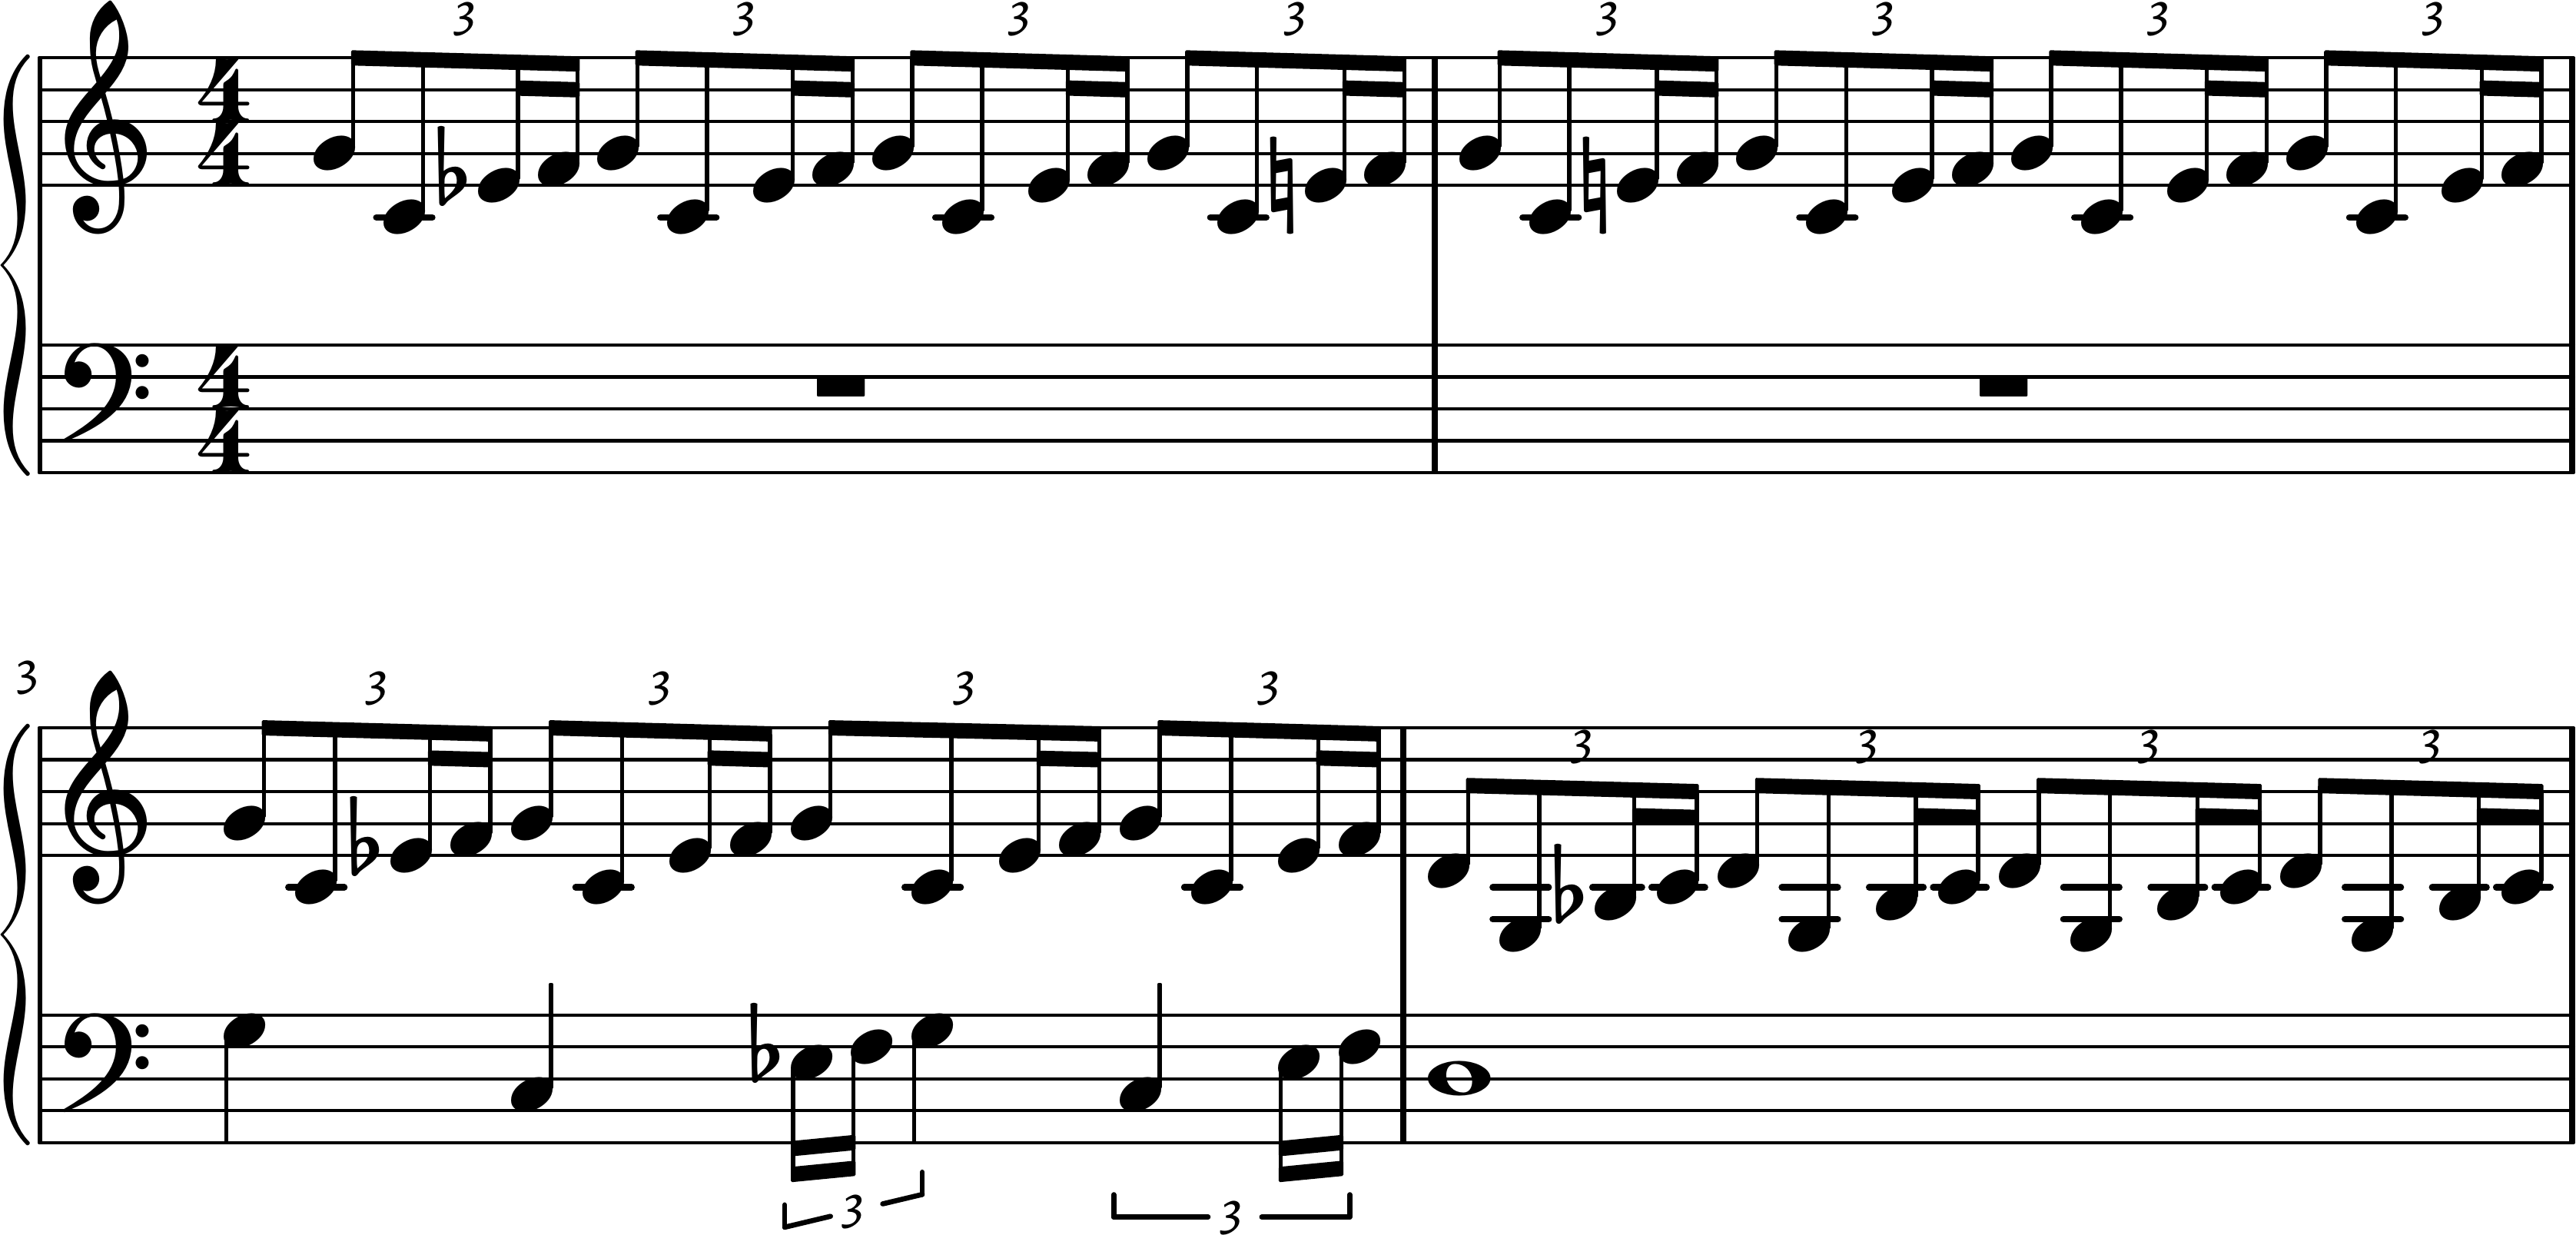 How To Write A Memorable Chorus In A Song (2/2)